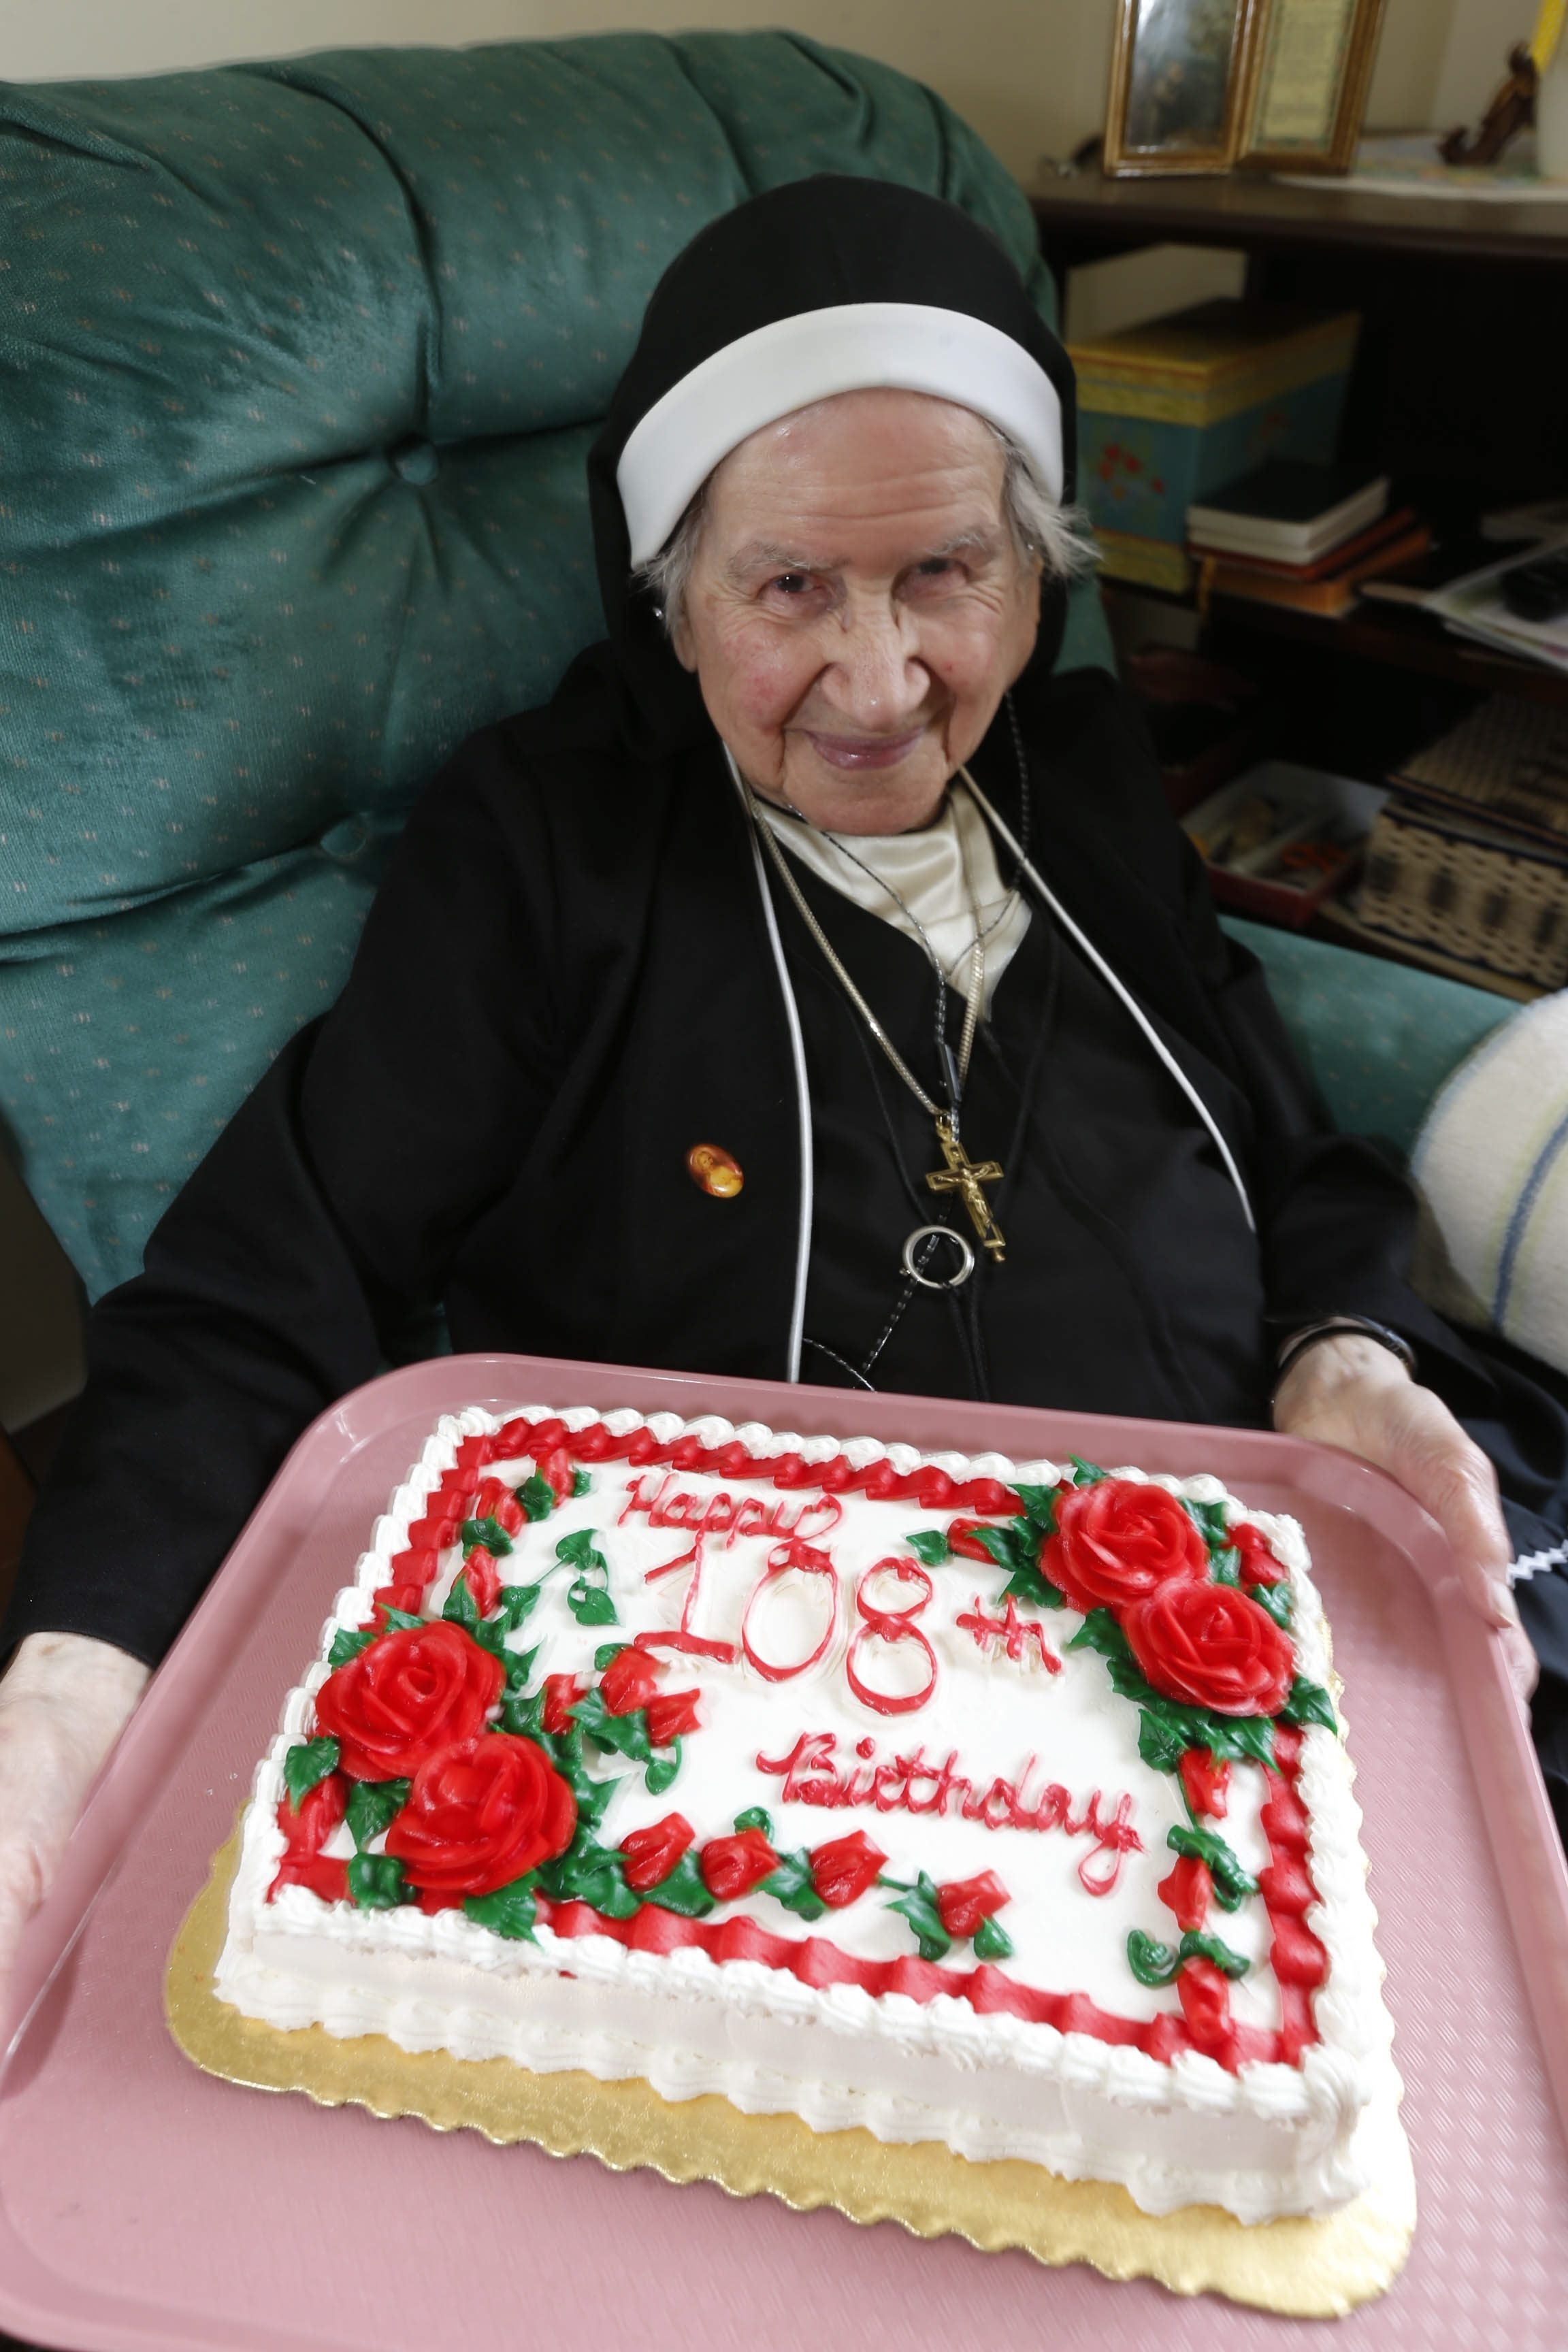 Sister John Maron Abdella admires the cake she was given to celebrate her 108th birthday at the Sisters of St. Joseph residence in Clarence on Friday.